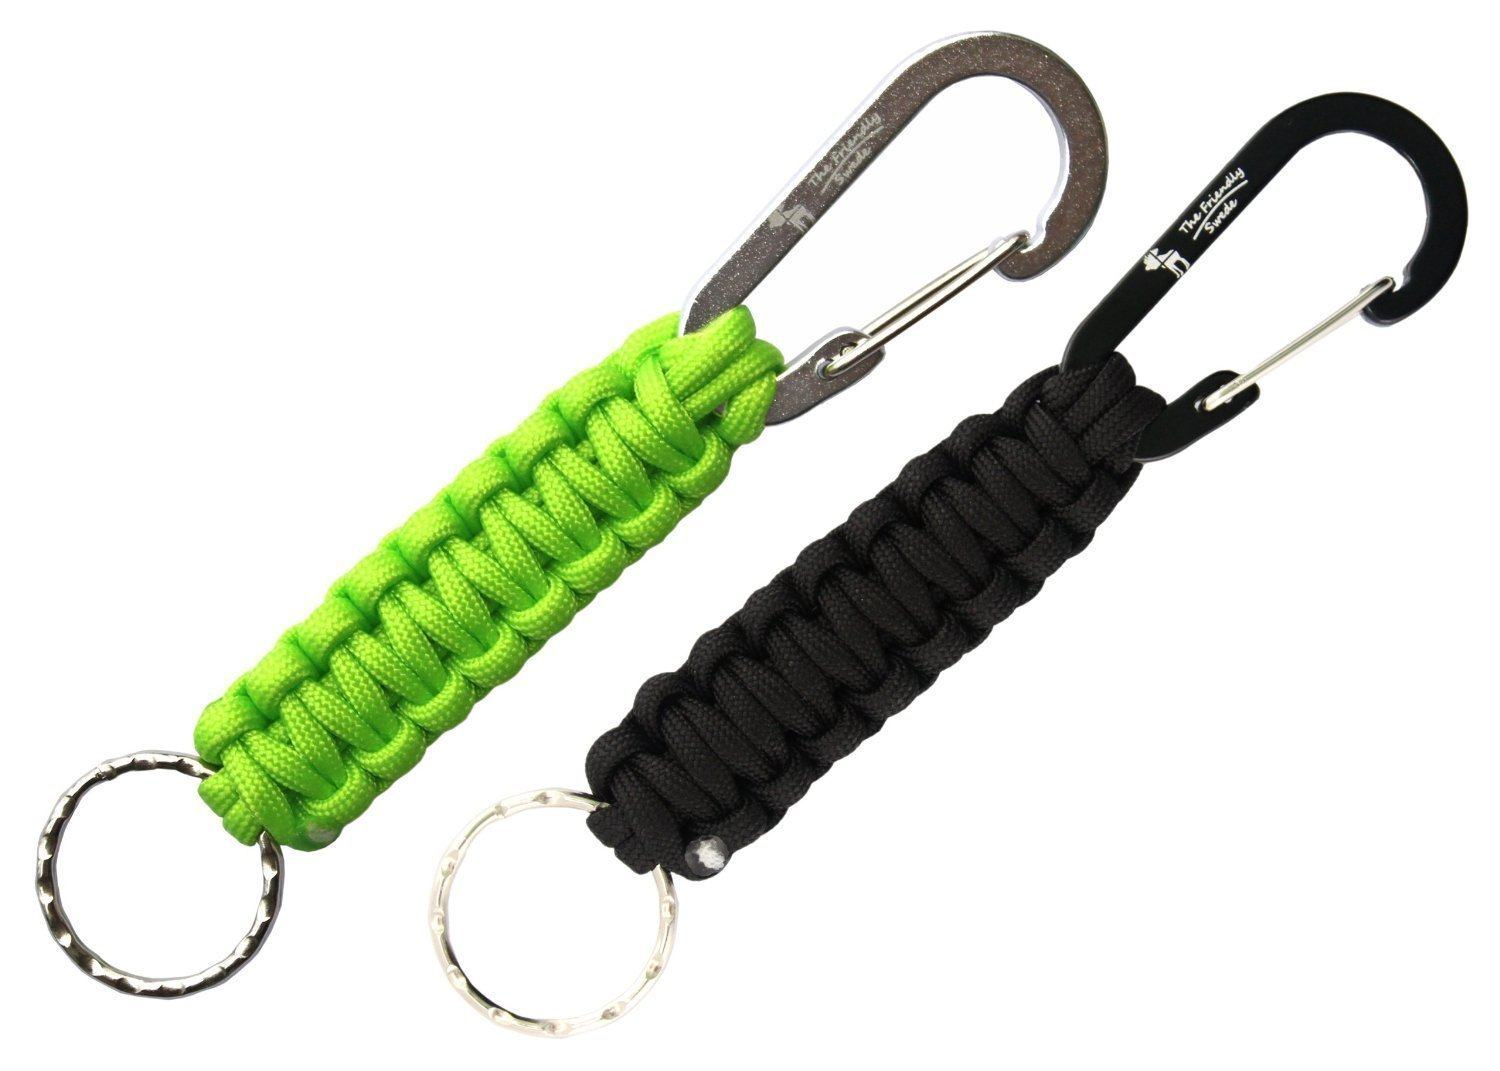 The Friendly Swede Llavero en Paracord con Mosquetón (Pack de 2) - GARANTÍA DE POR VIDA